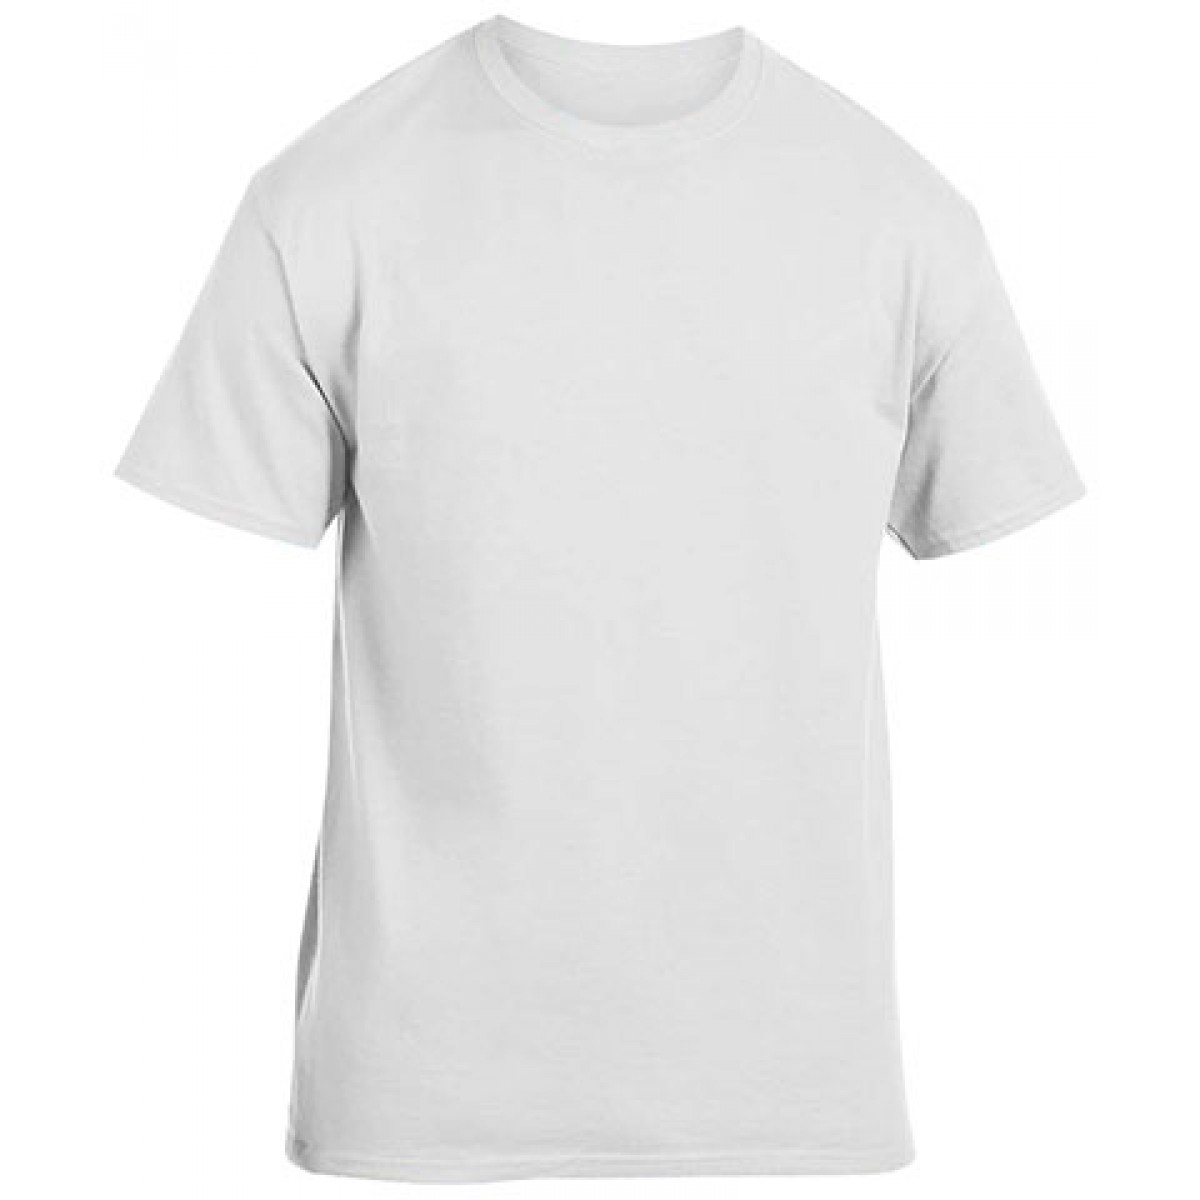 Heavy Cotton Activewear T-Shirt-White-XL